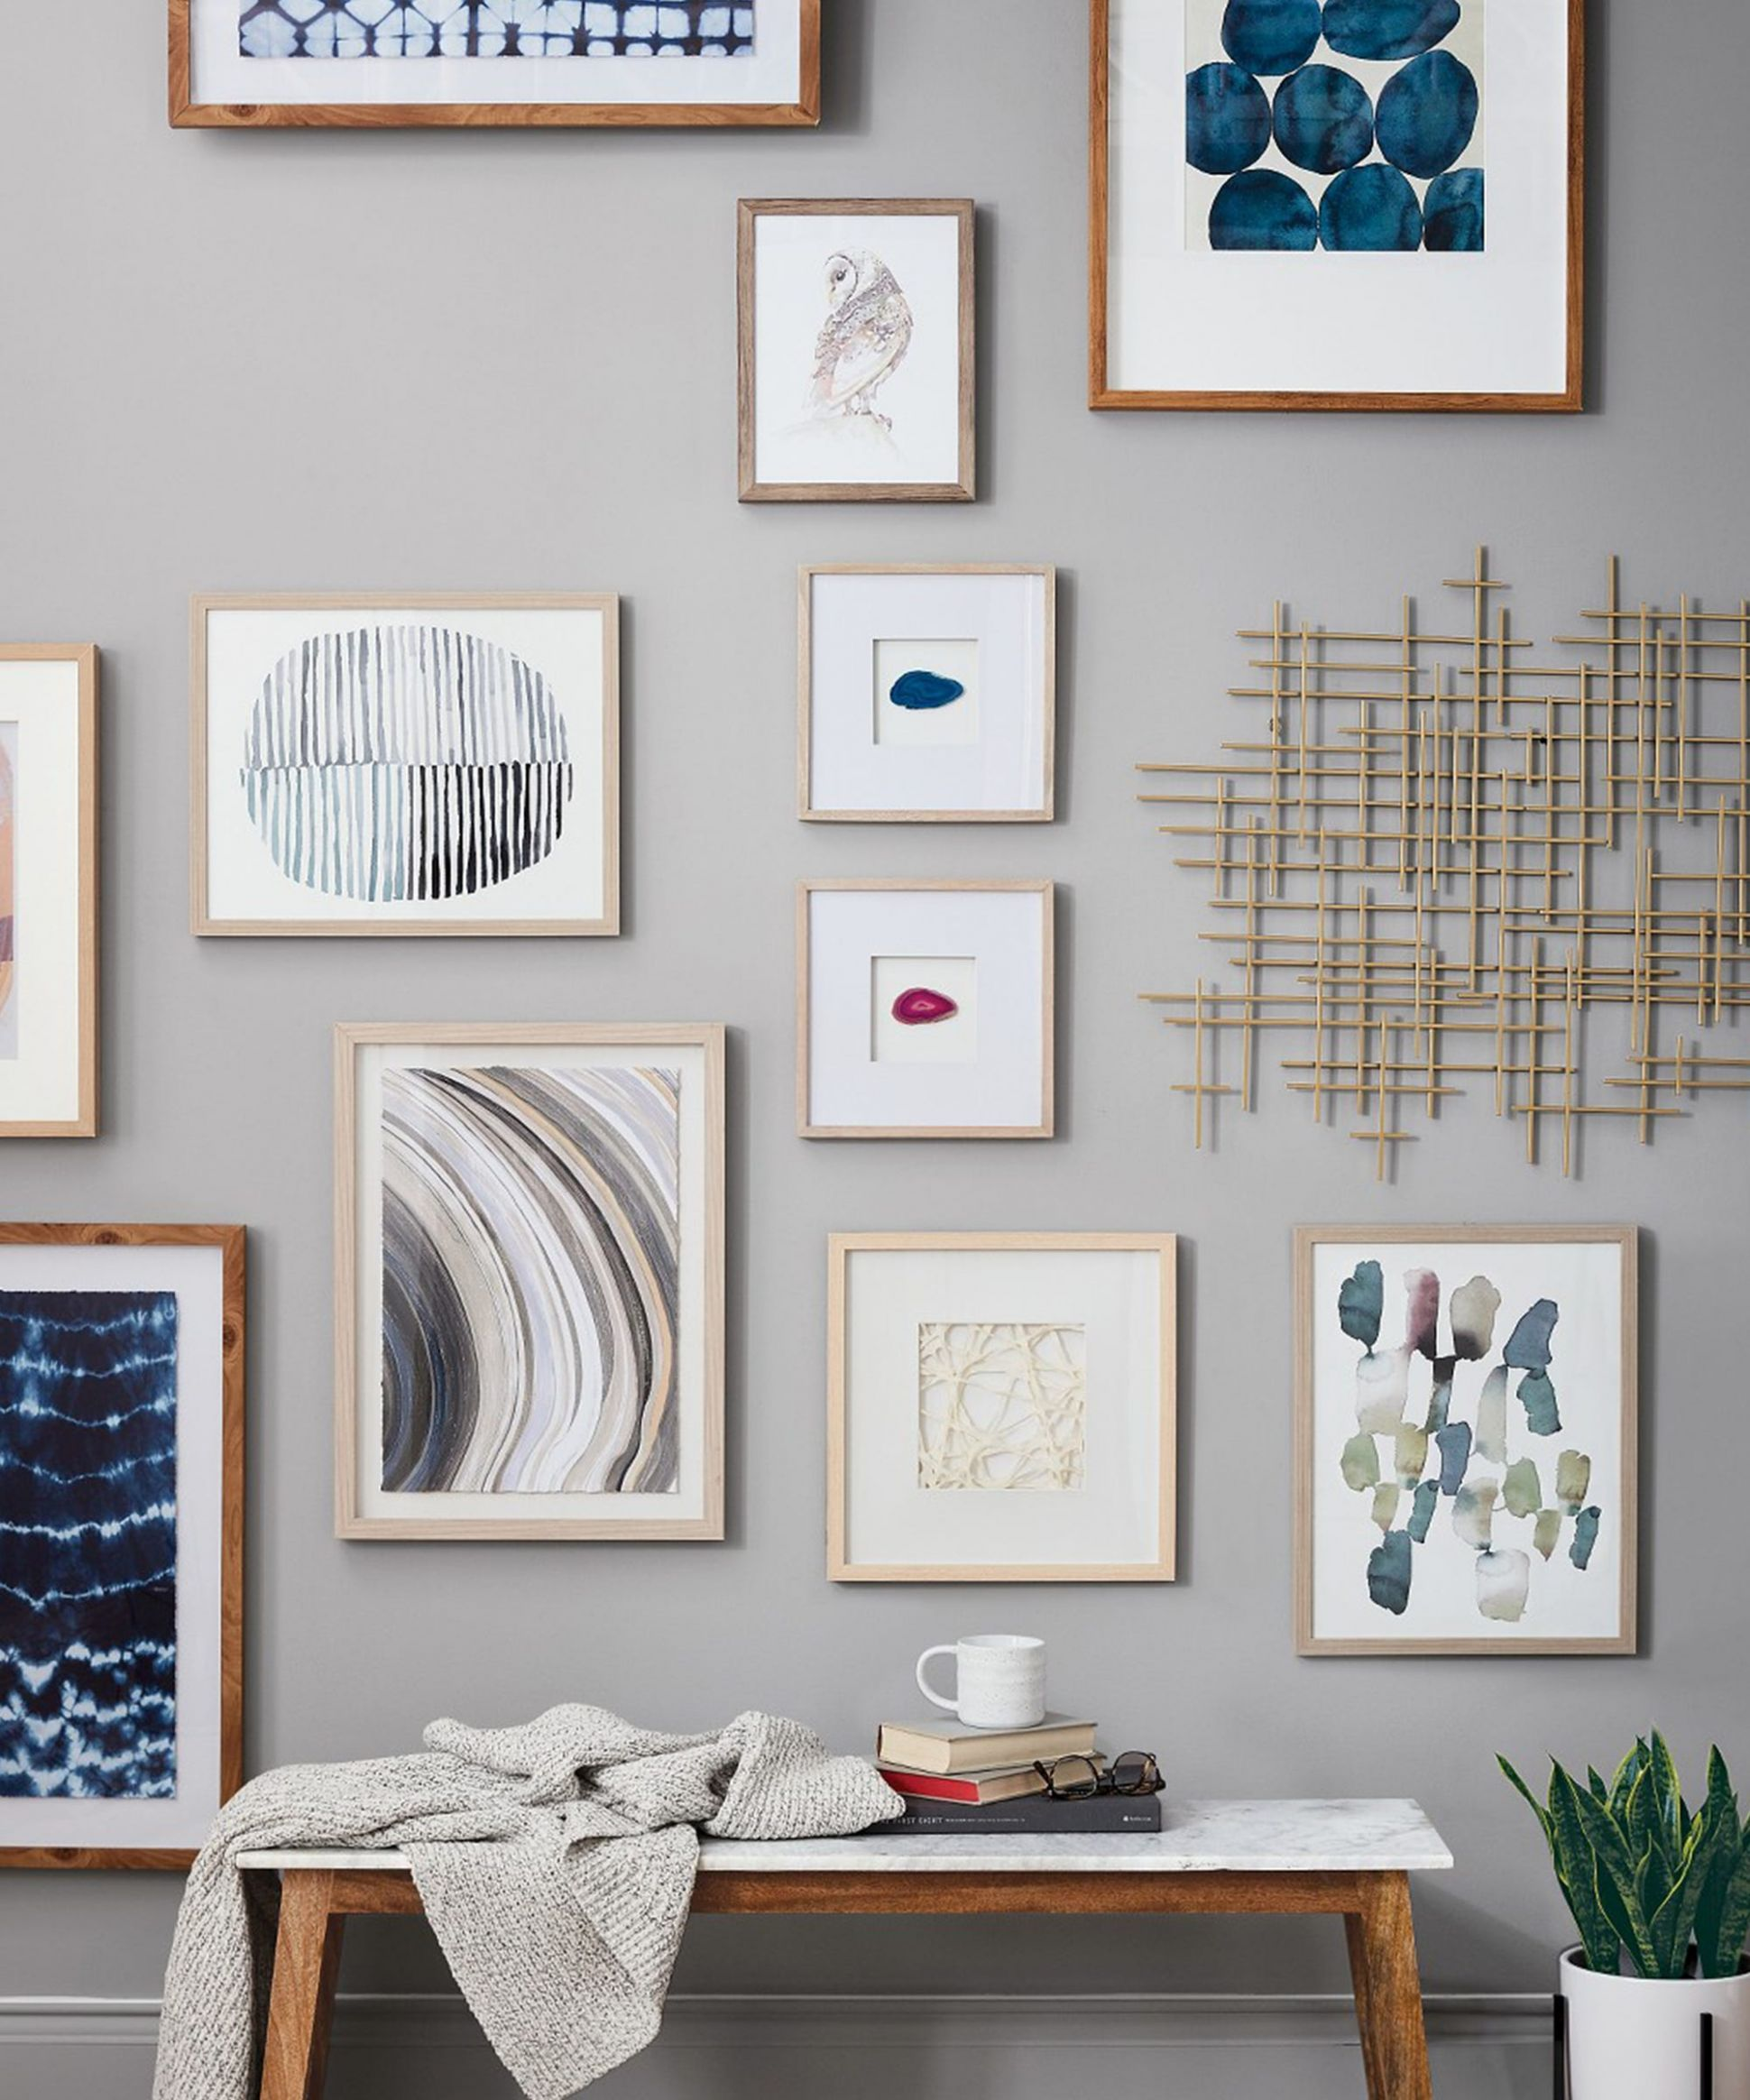 Target Sale 12 - Best Furniture And Home Decor Deals